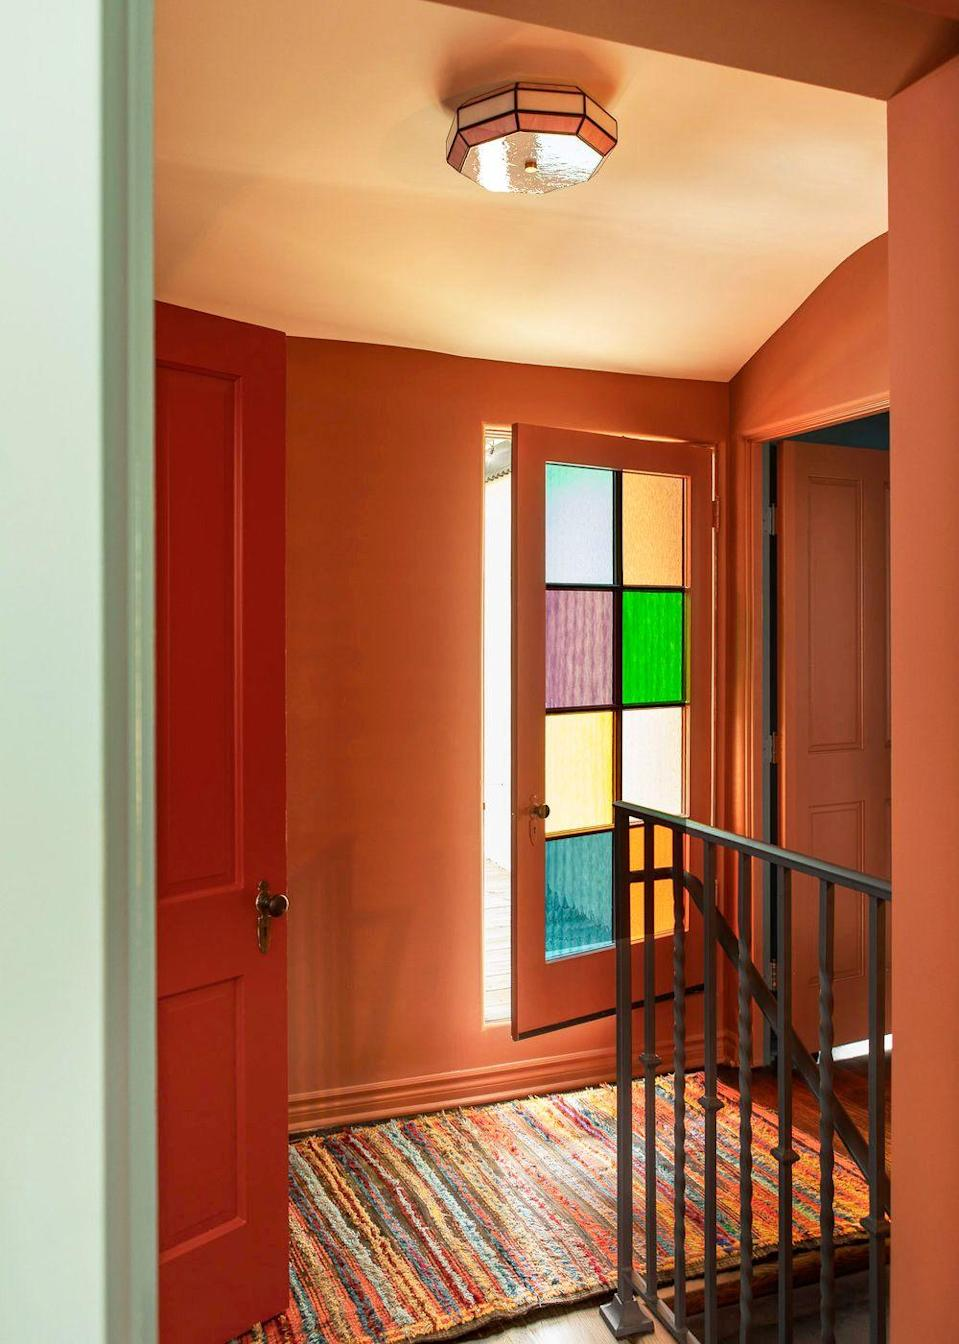 """<p>This hallway by <a href=""""https://www.reathdesign.com/"""" rel=""""nofollow noopener"""" target=""""_blank"""" data-ylk=""""slk:Reath Design"""" class=""""link rapid-noclick-resp"""">Reath Design</a> proves that rainbow decorating can be energizing without being overly stimulating. With multi-colored panes and a striped carpet, this is another example of a transitional space being much more than just a place to get you room to room. </p>"""